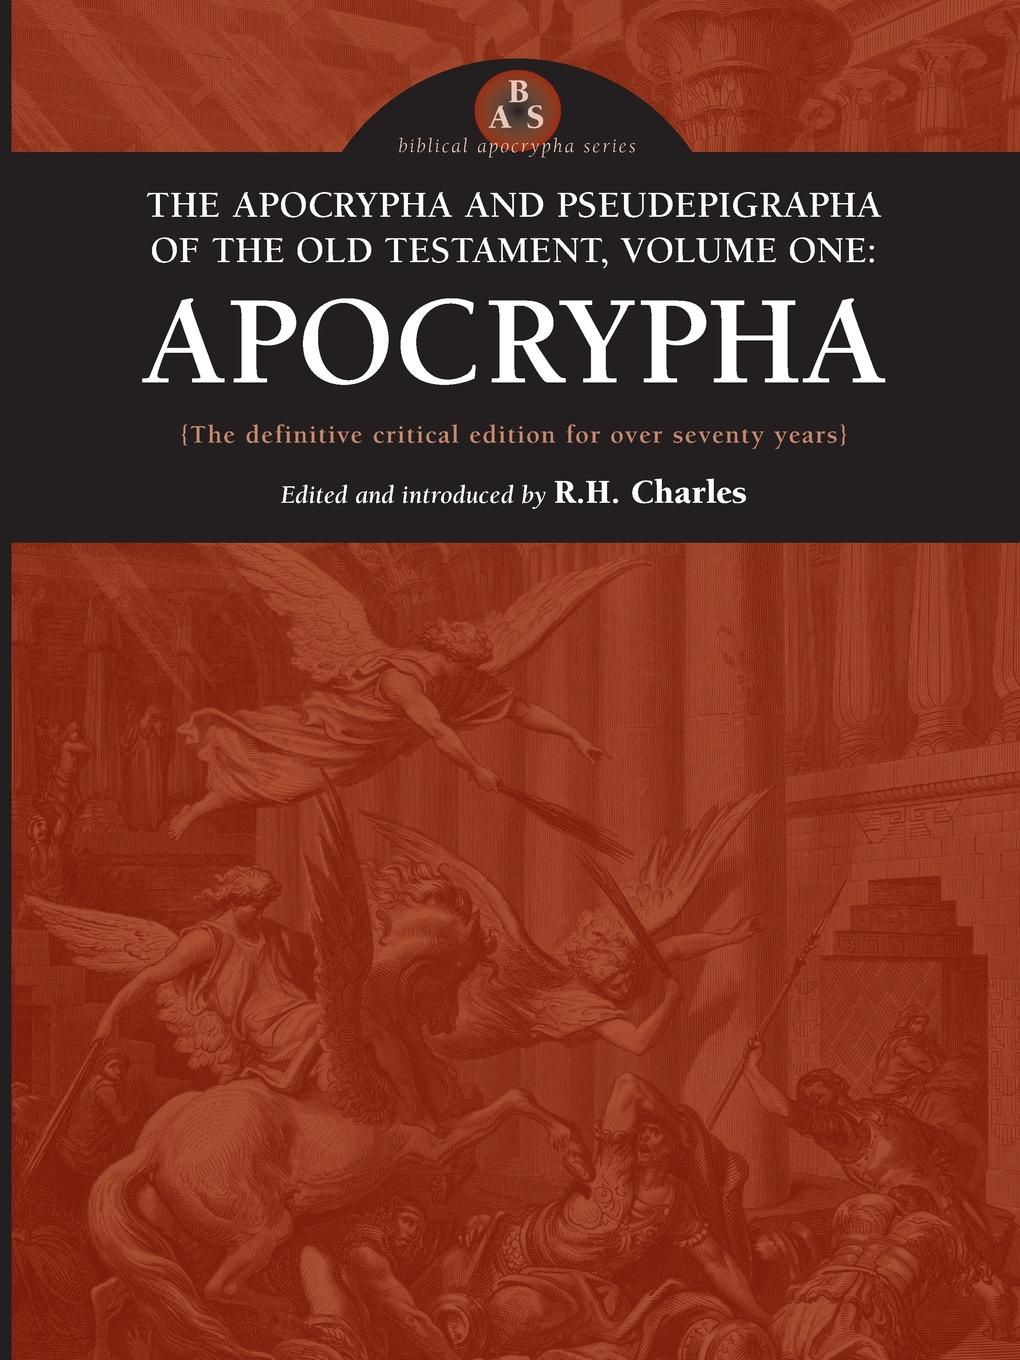 The Apocrypha and Pseudephigrapha of the Old Testament, Volume One. Apocrypha sir lancelot charles lee brenton the septuagint version of the old testament volume 1